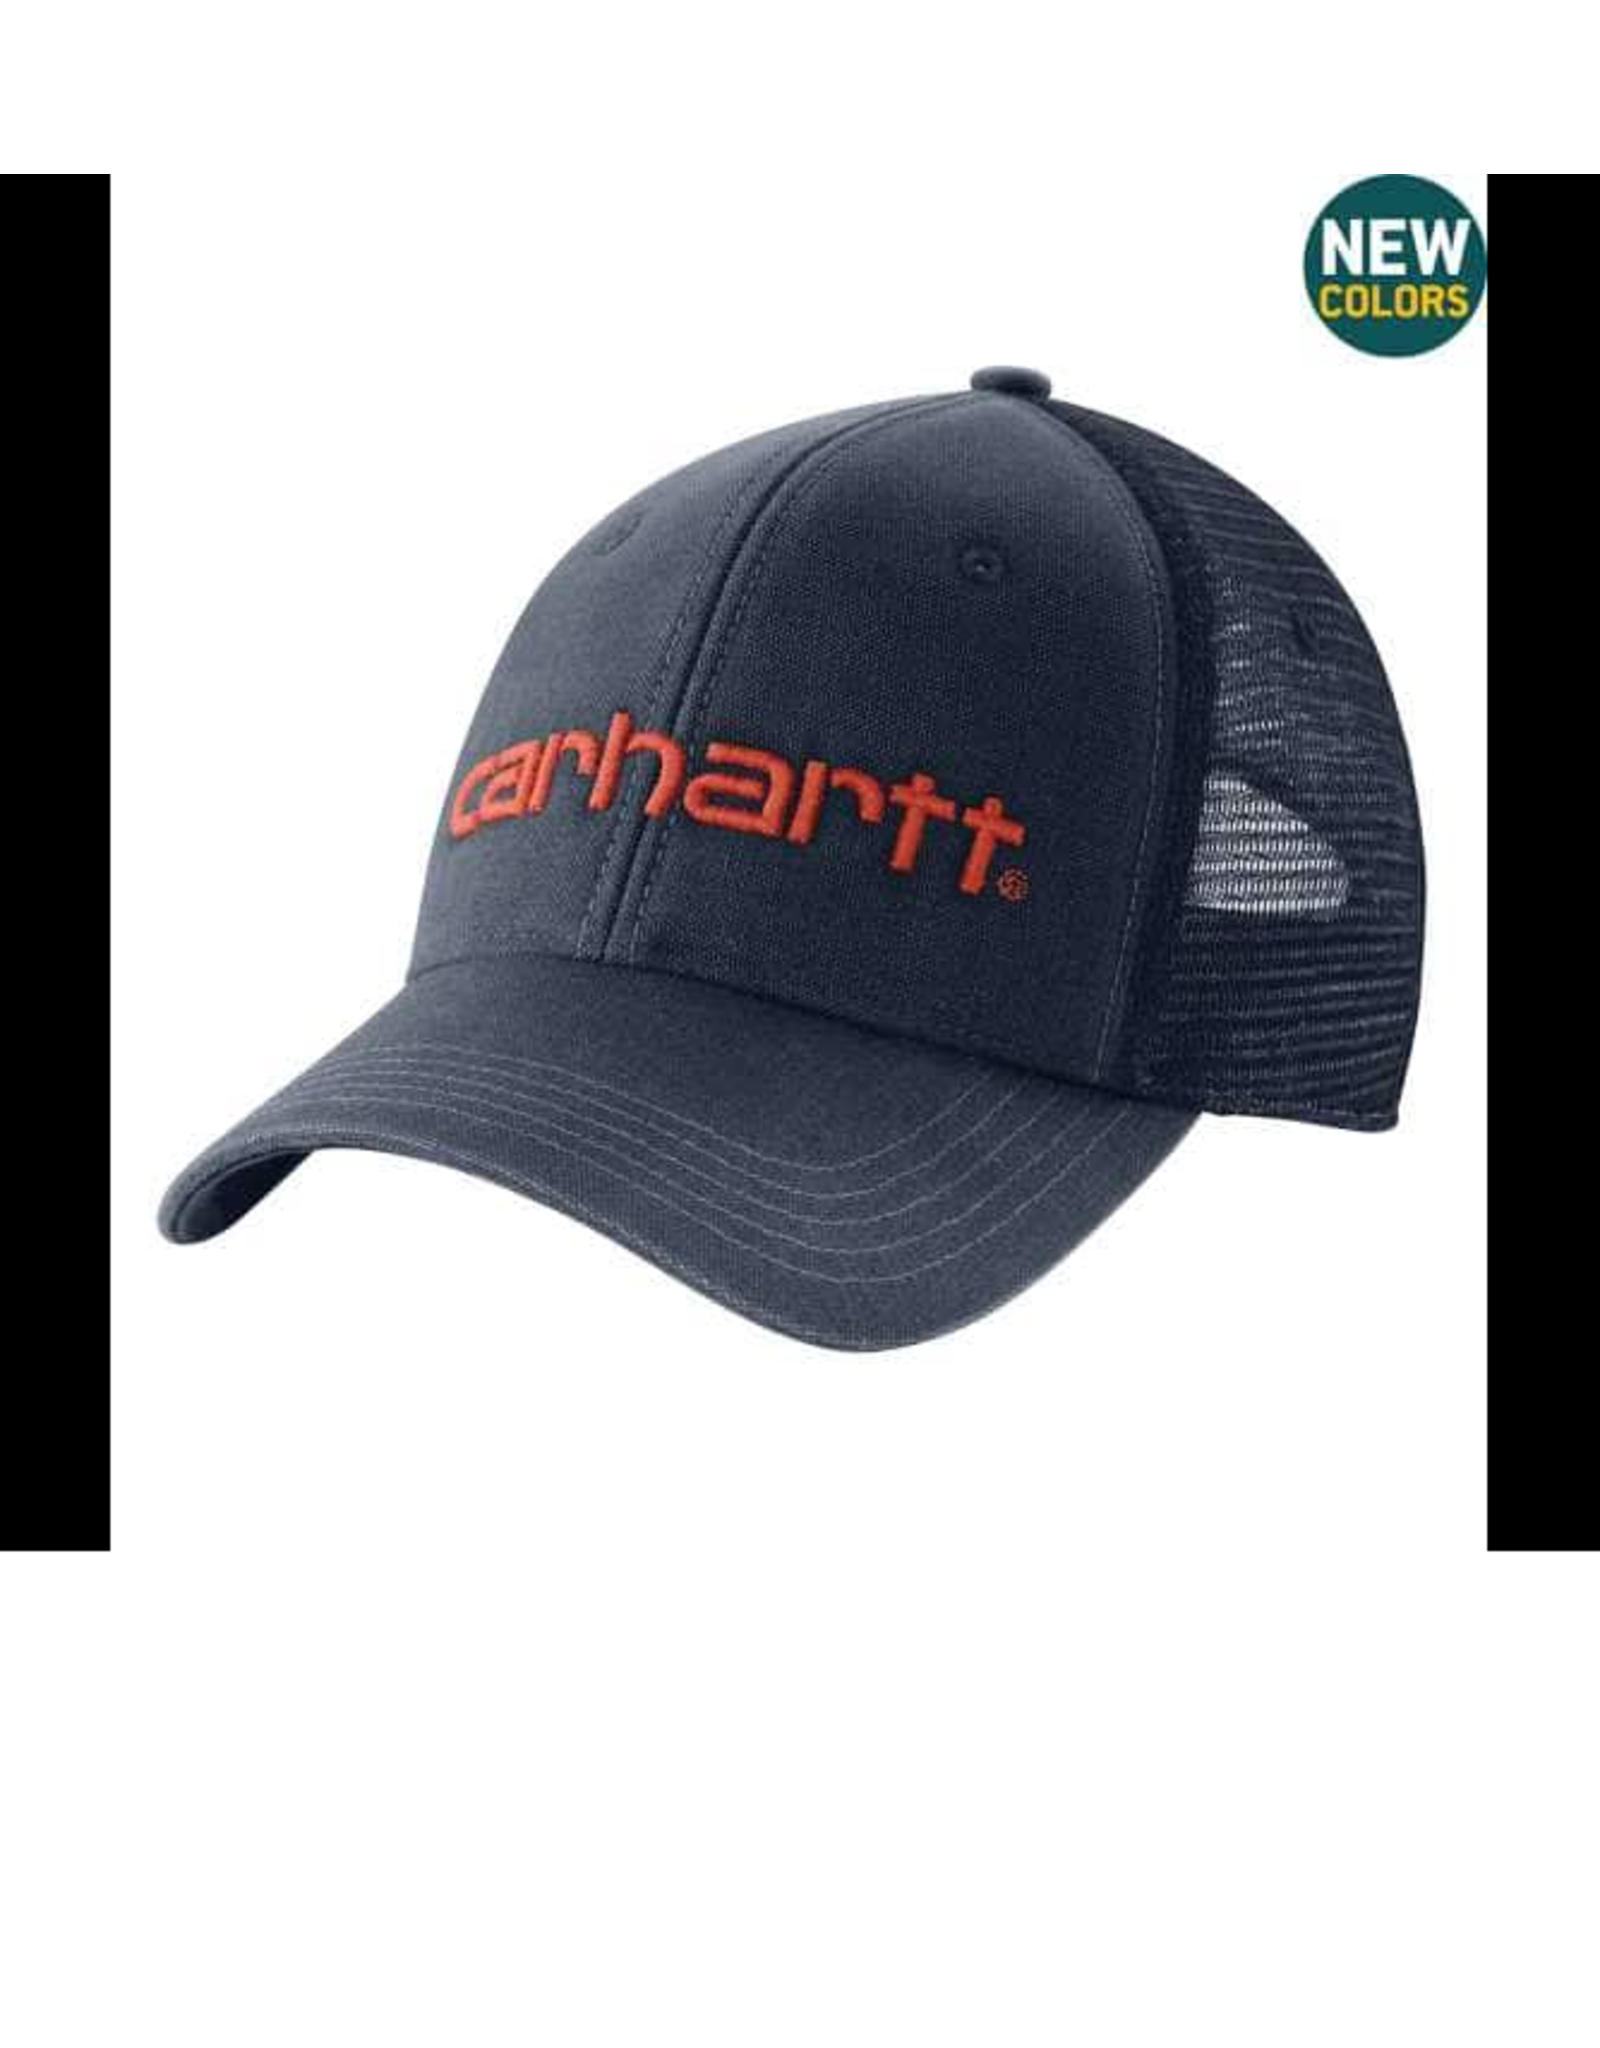 CANVAS MESH-BACK FITTED LOGO GRAPHIC CAP